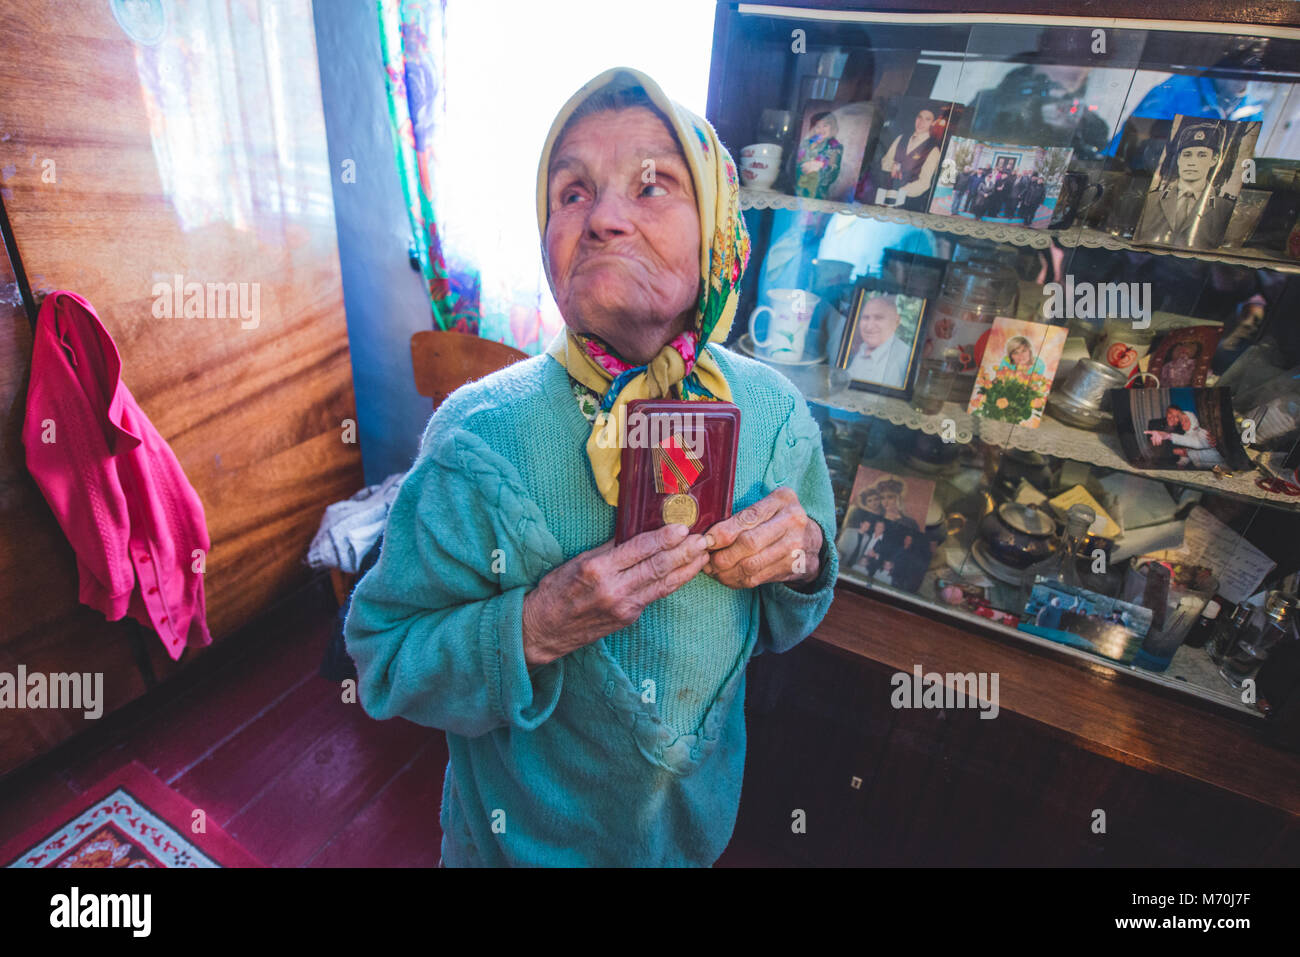 Ukraine, Chernobyl Exclusion Zone: people who came back to the exclusion zone after the Chernobyl nuclear disaster - Stock Image